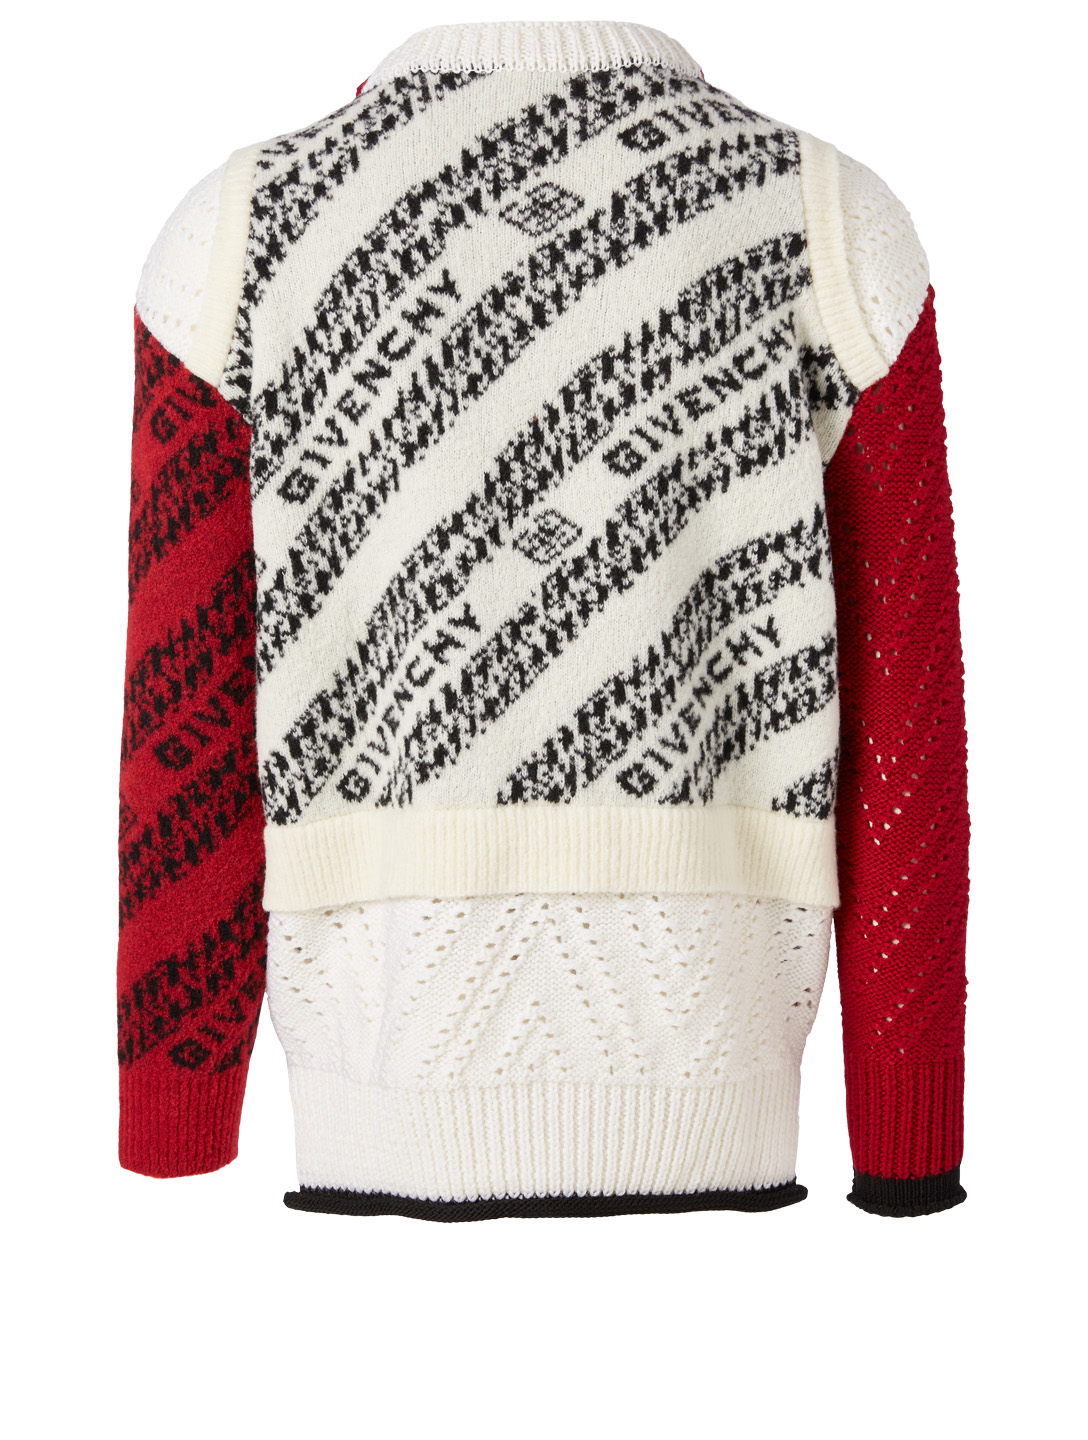 GIVENCHY Wool-Blend Patchwork Sweater In Chain Logo Print Men's Multi